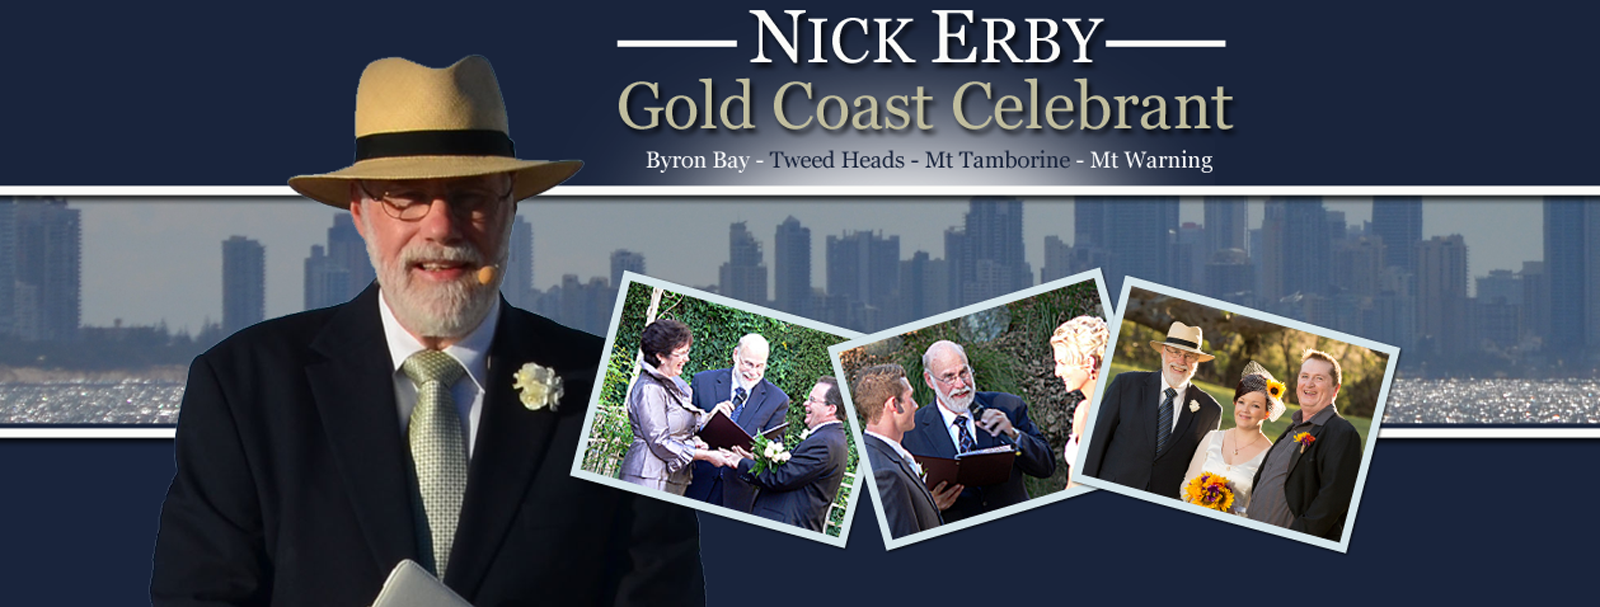 Nick Erby, Gold Coast Celebrant